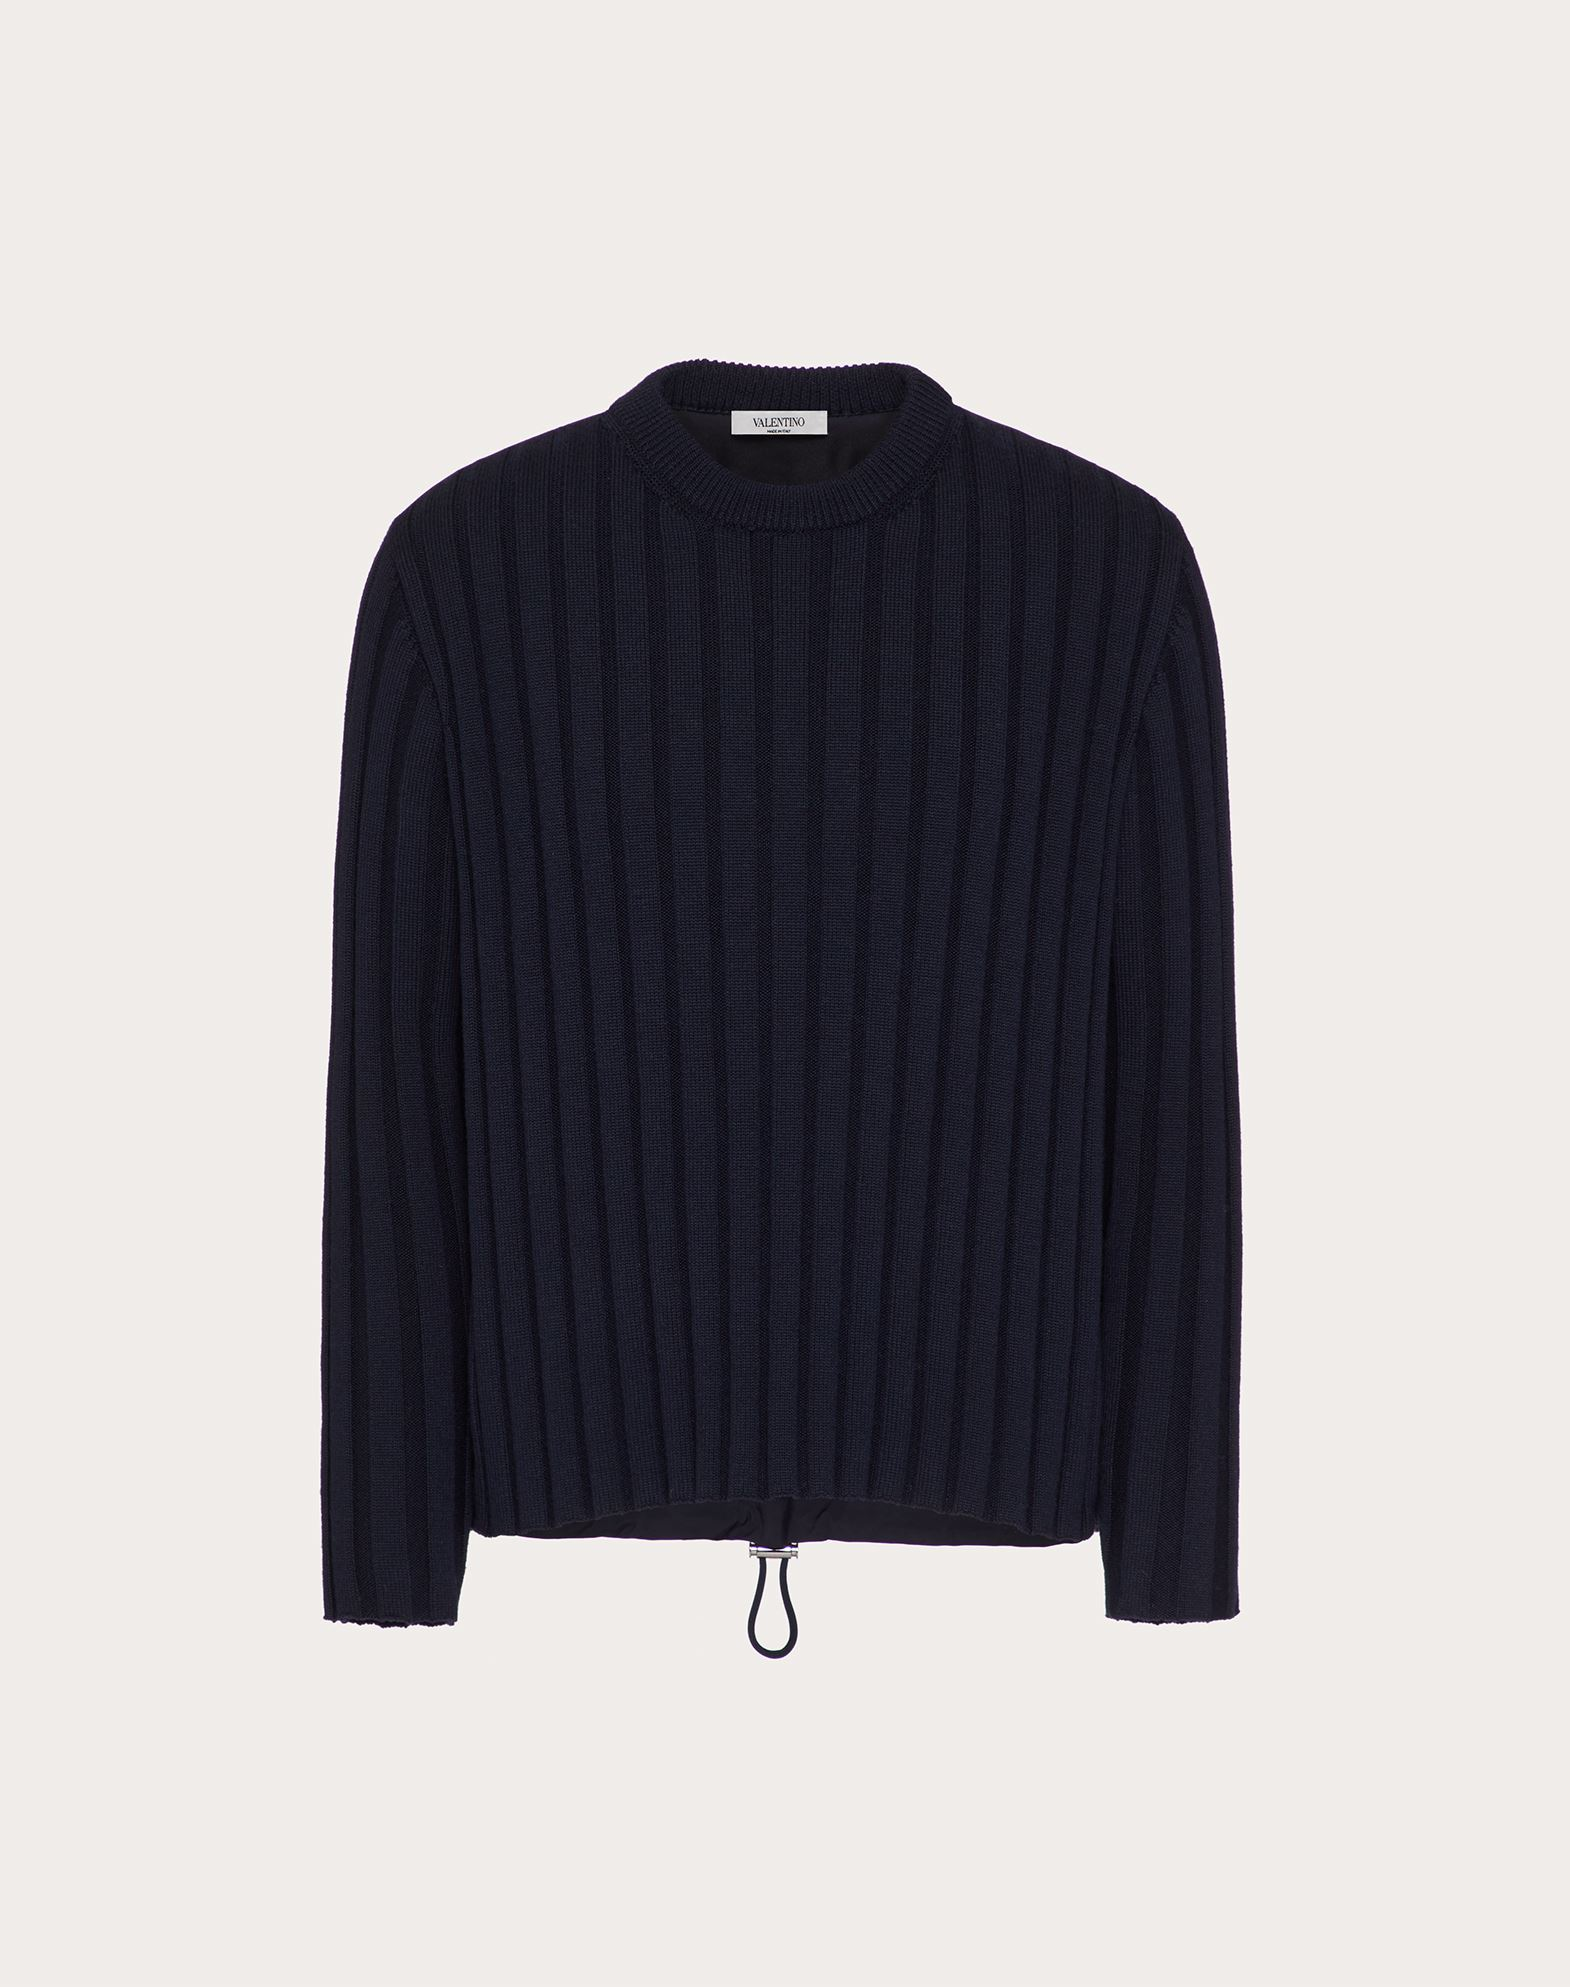 Valentino Uomo Crewneck Sweater With Wool And Nylon Mix In Navy